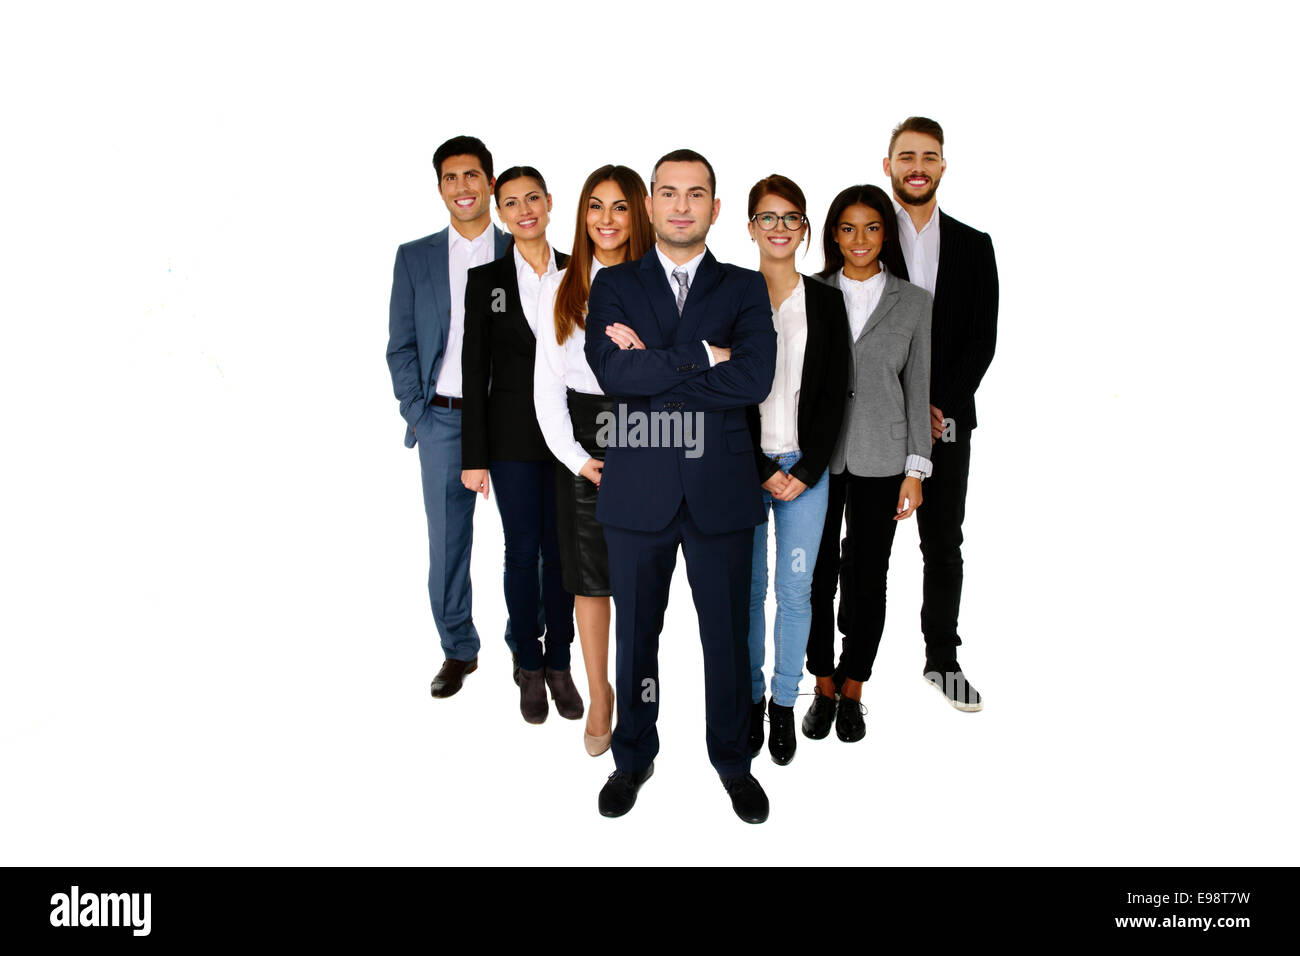 Smiling man leading his happy team over white background - Stock Image